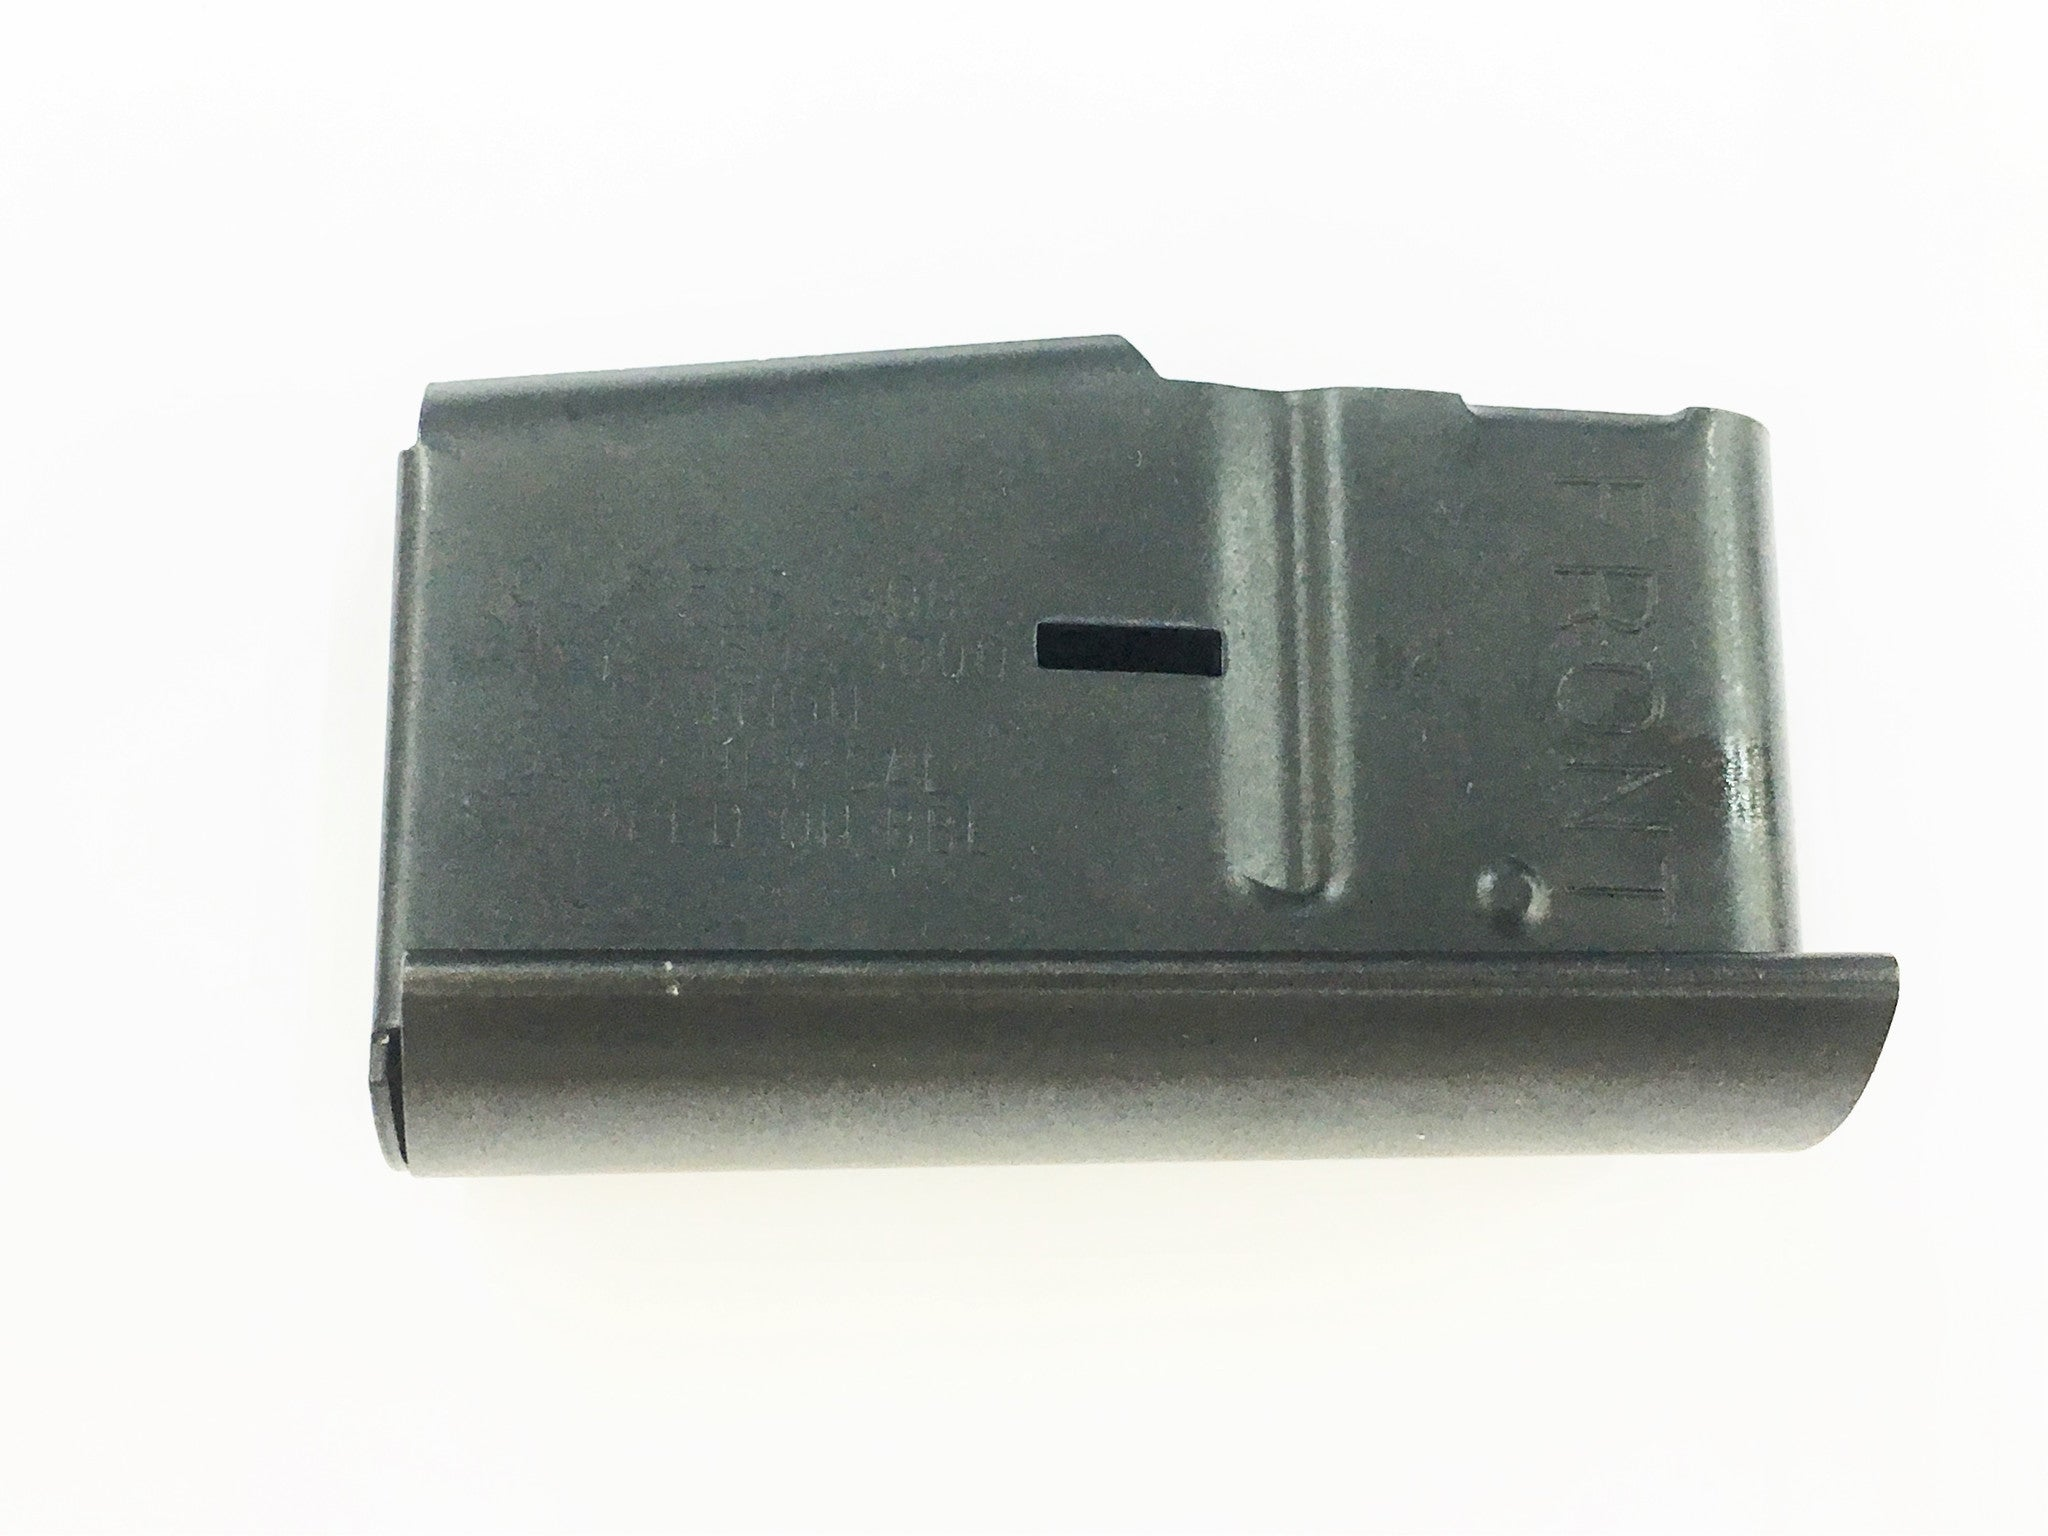 Savage Magazine 99C 243 Win, 308 Win, 250 Savage 5 Round Blued (SM55126)